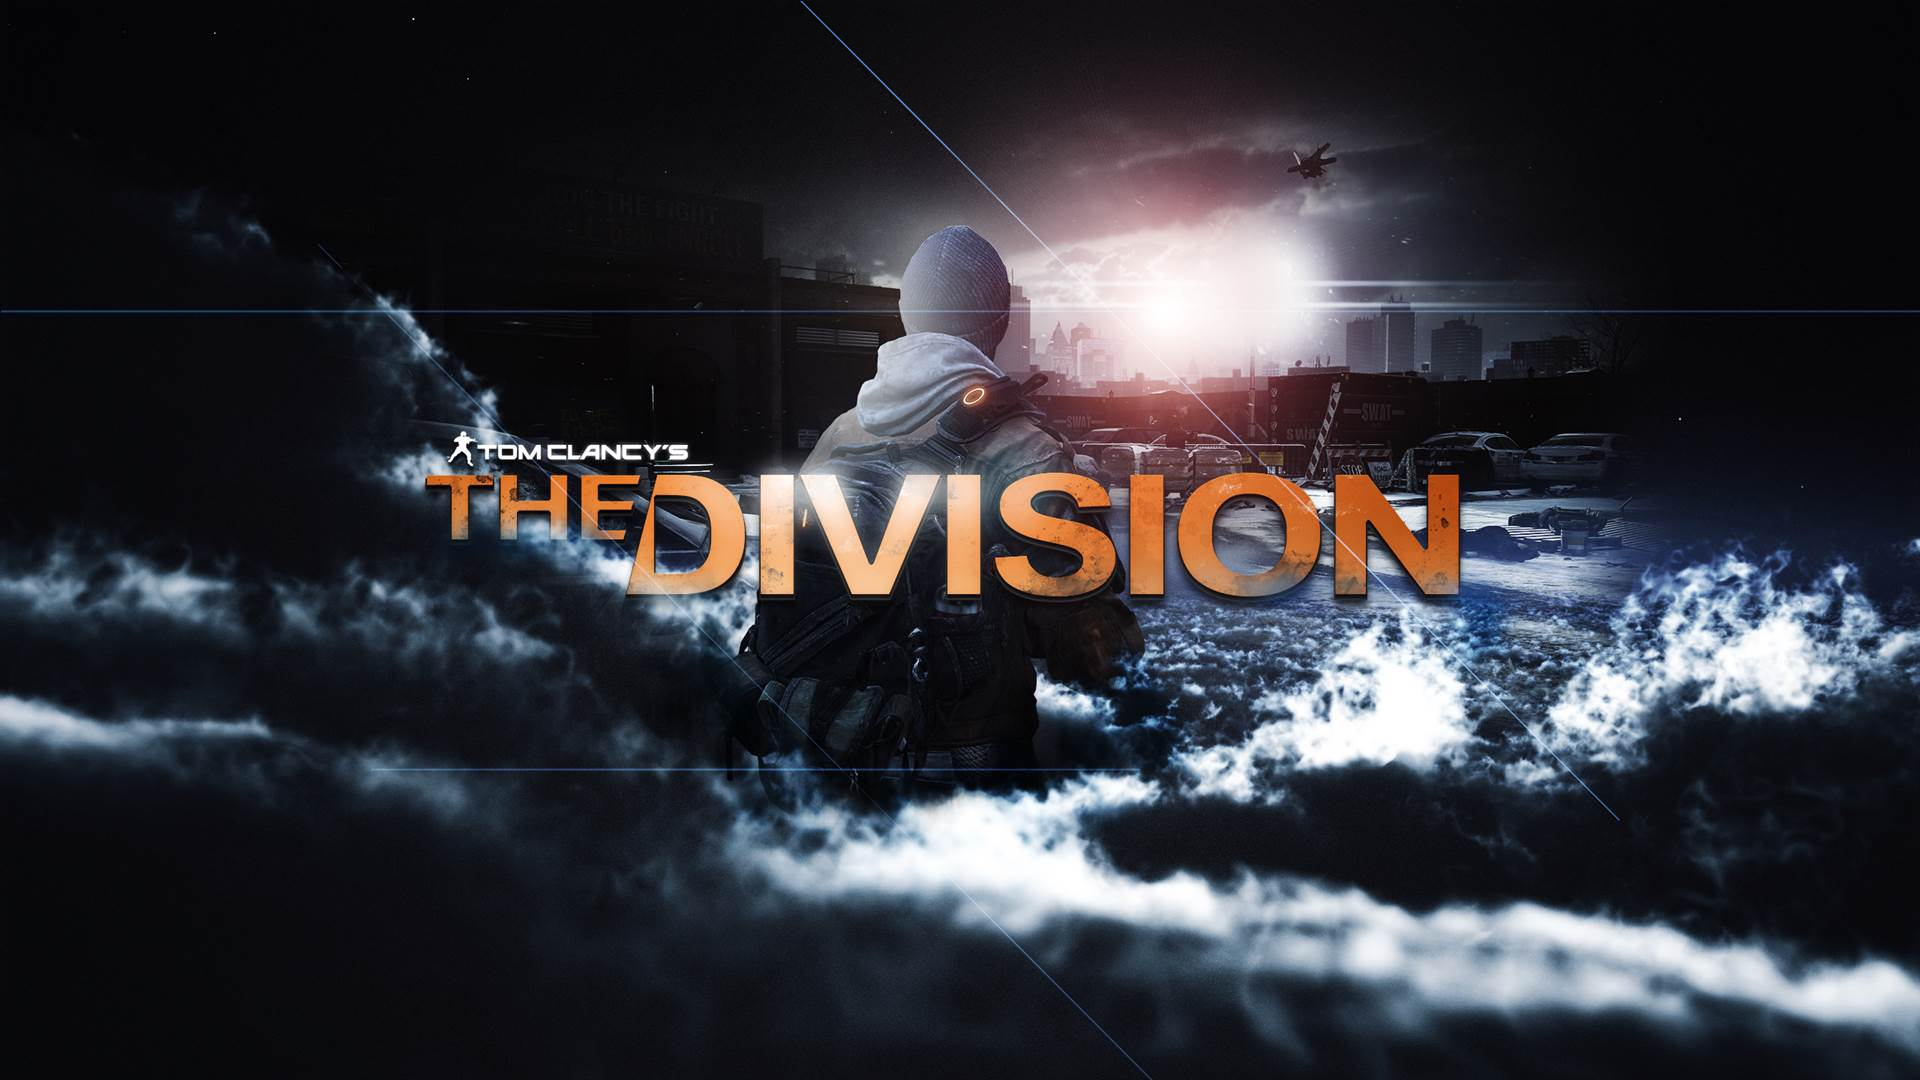 Free Download Tom Clancys The Division Wallpapers High